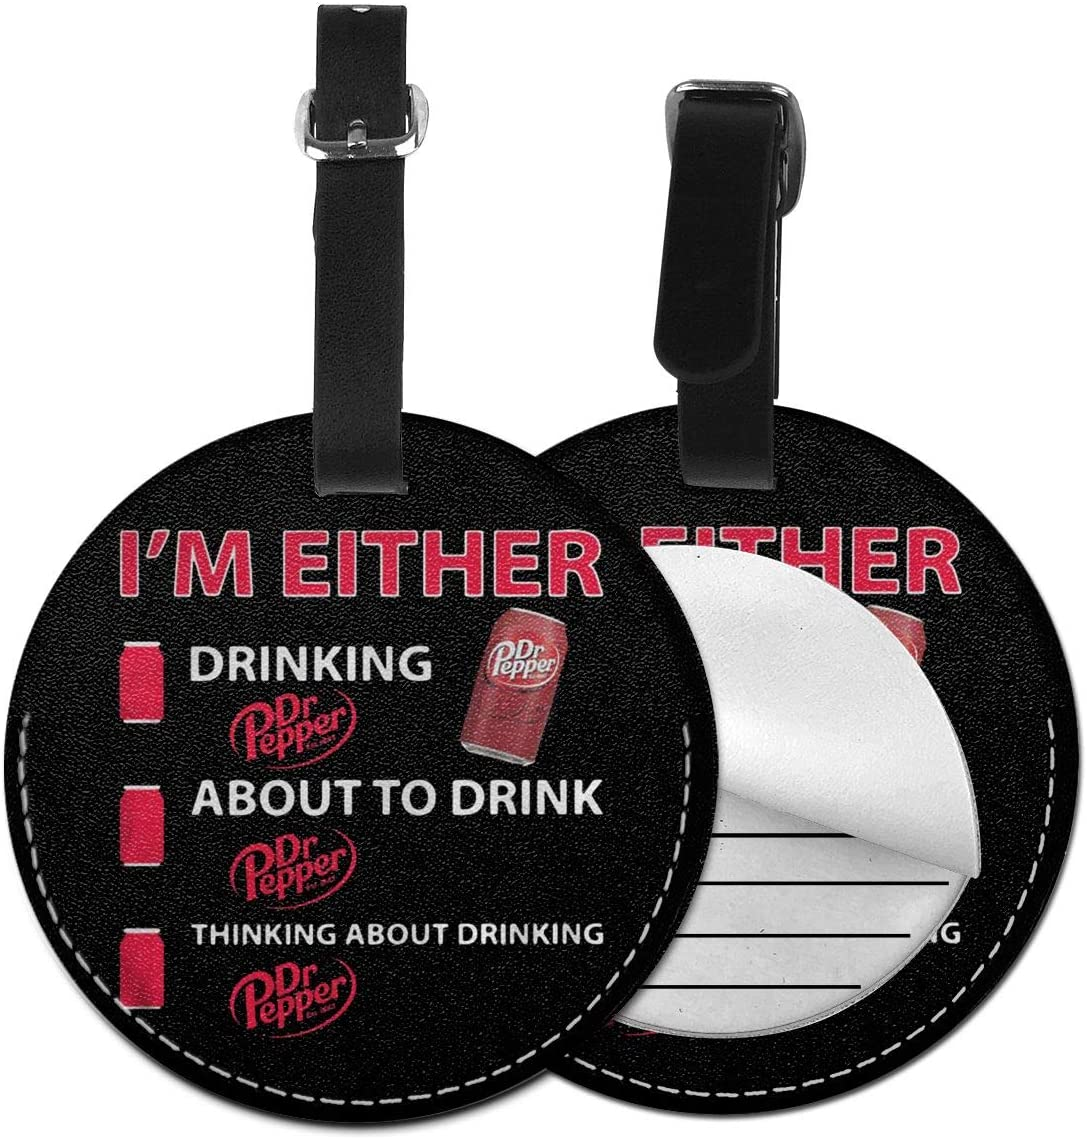 N/C I'm Either Drinking Dr. Pepper About to Drink Dr. Pepper Thinking About Drinking Dr. Pepper Cartoon Artificial Leather Round Luggage Tag